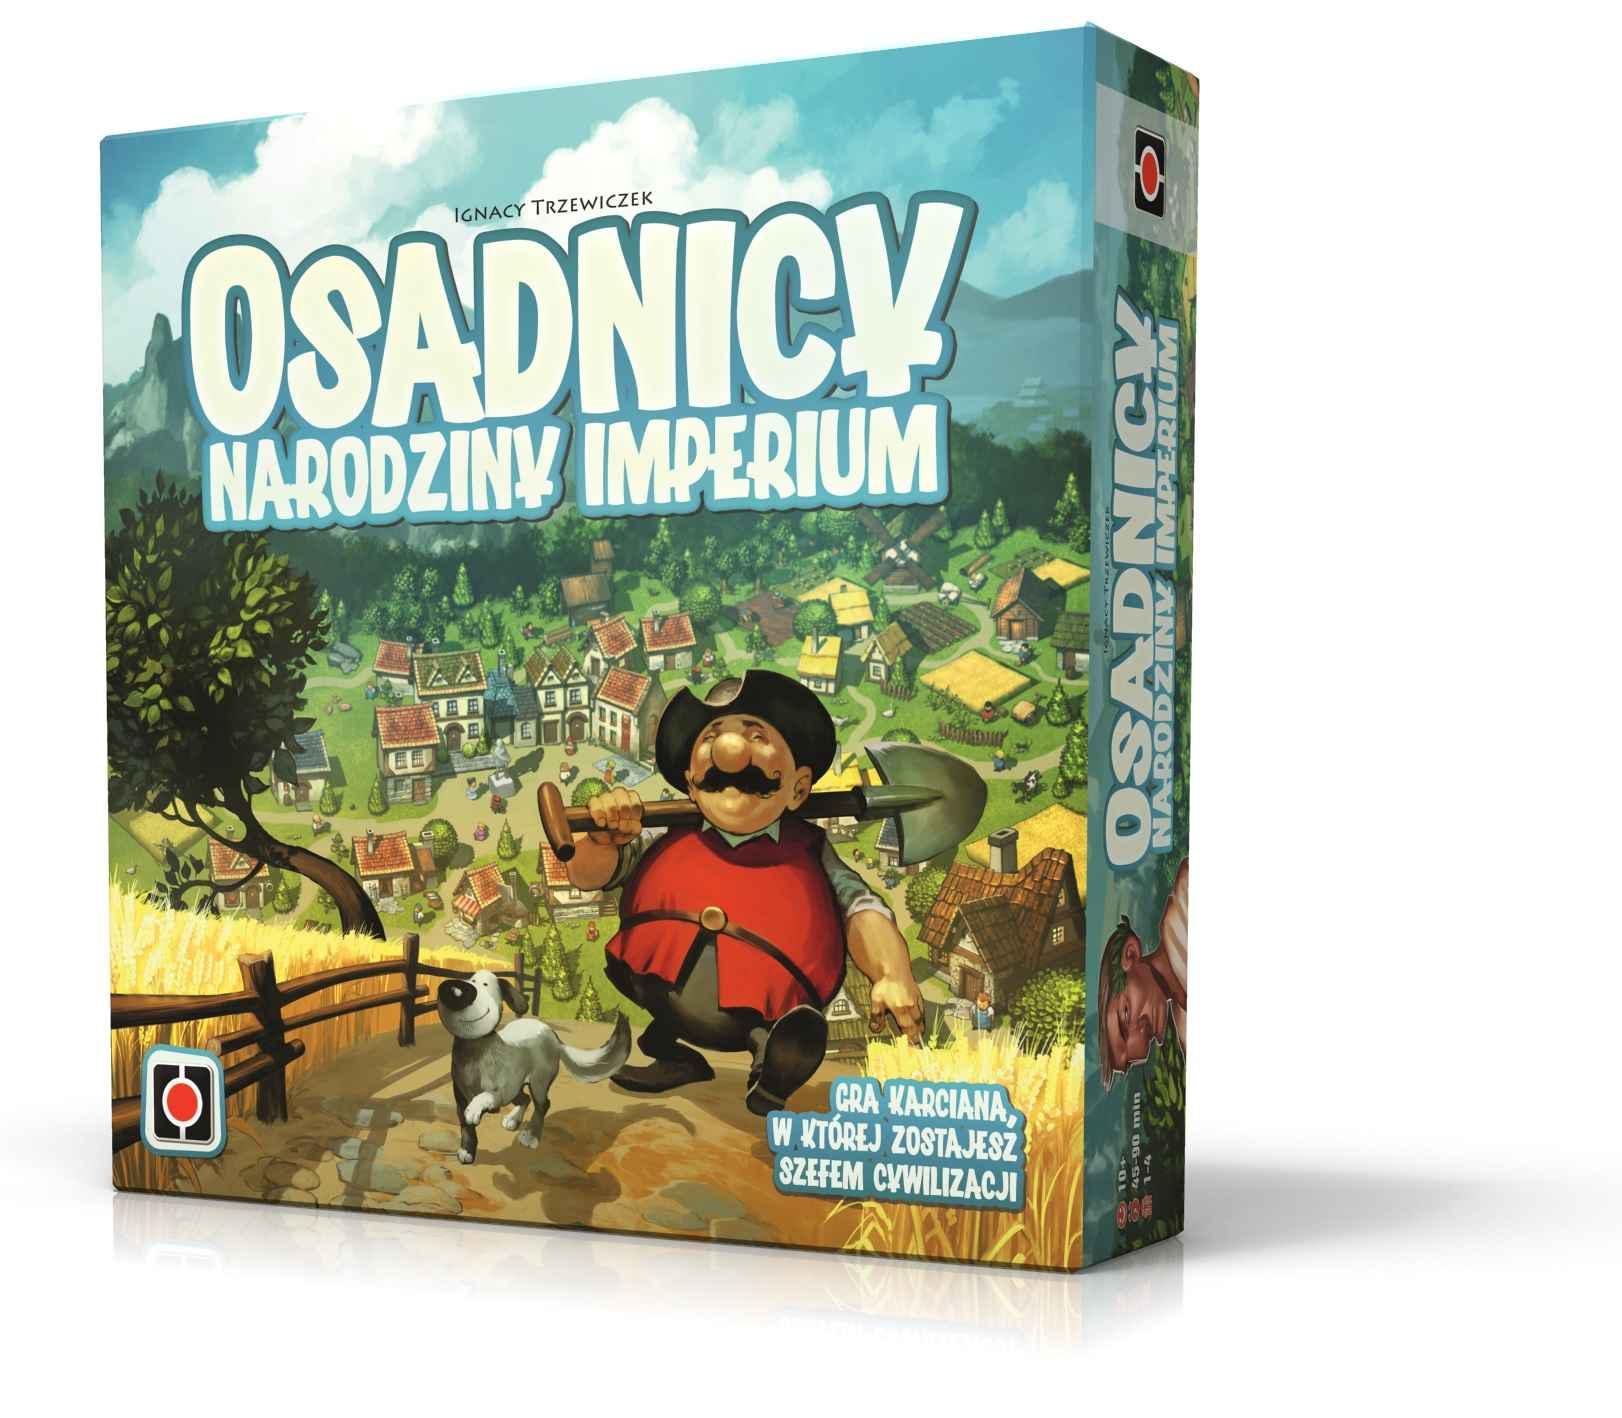 imperialni-osadnicy-okladka